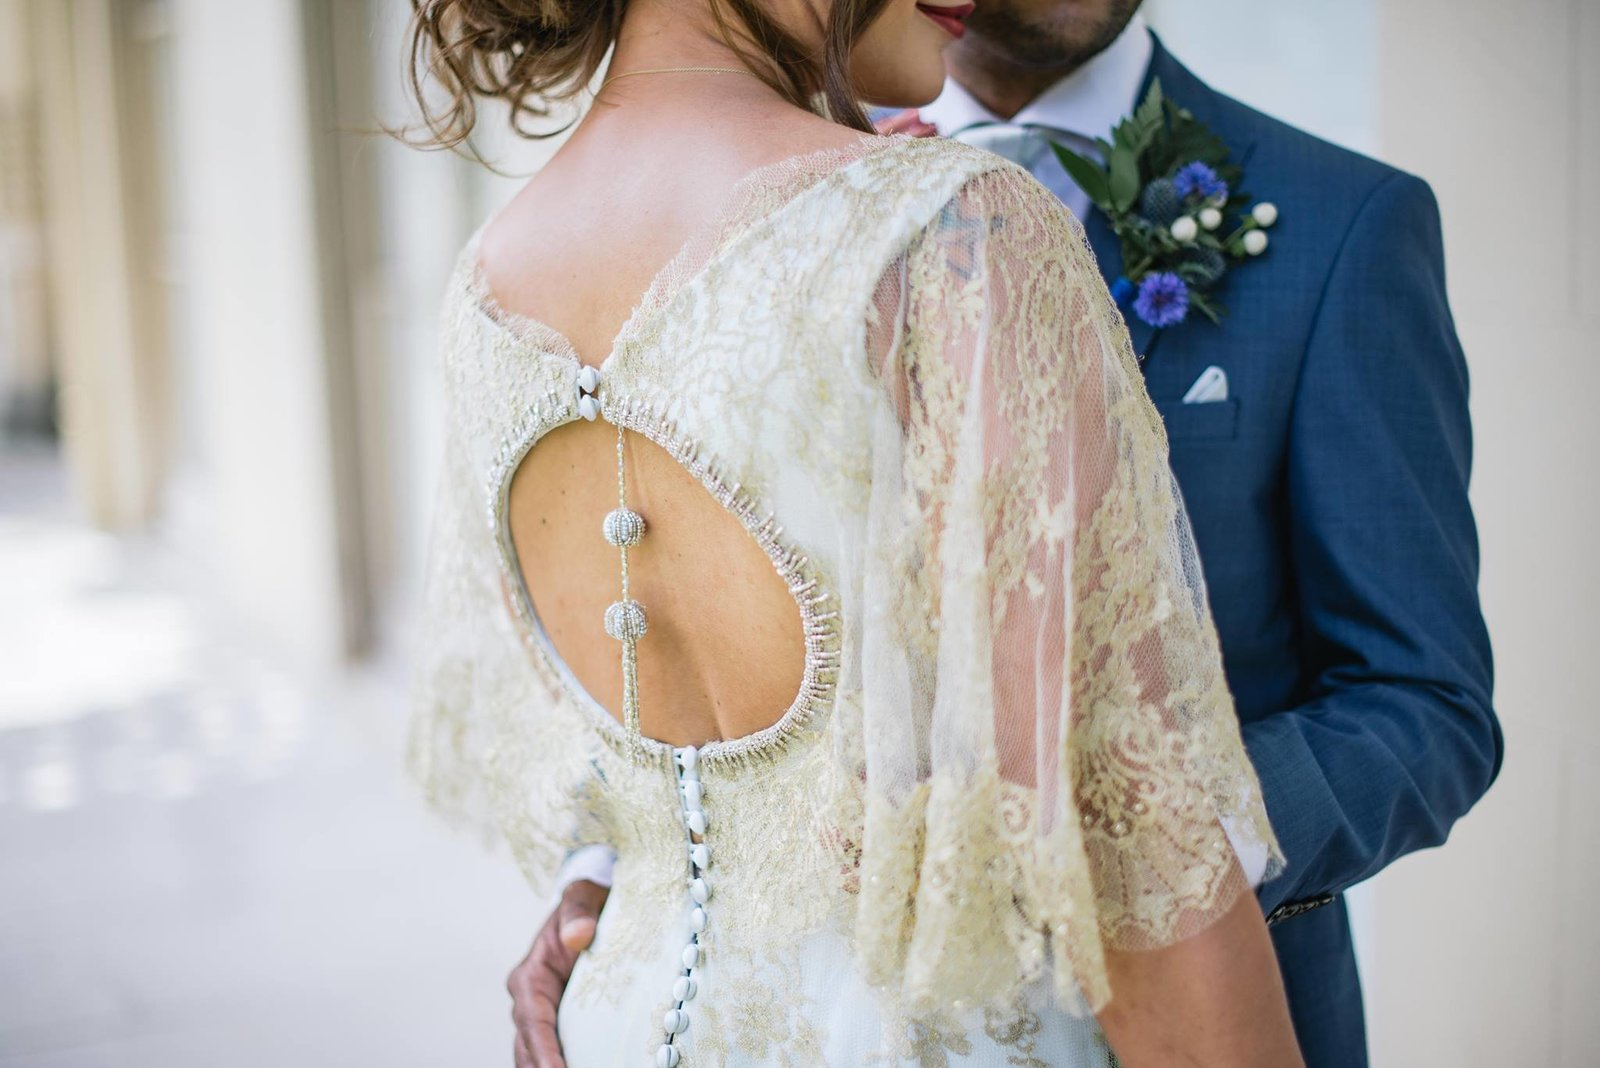 Anglo Indian fusion wedding blue and gold dress by Joanne Fleming Design, photo by Jacqui McSweeney (1)